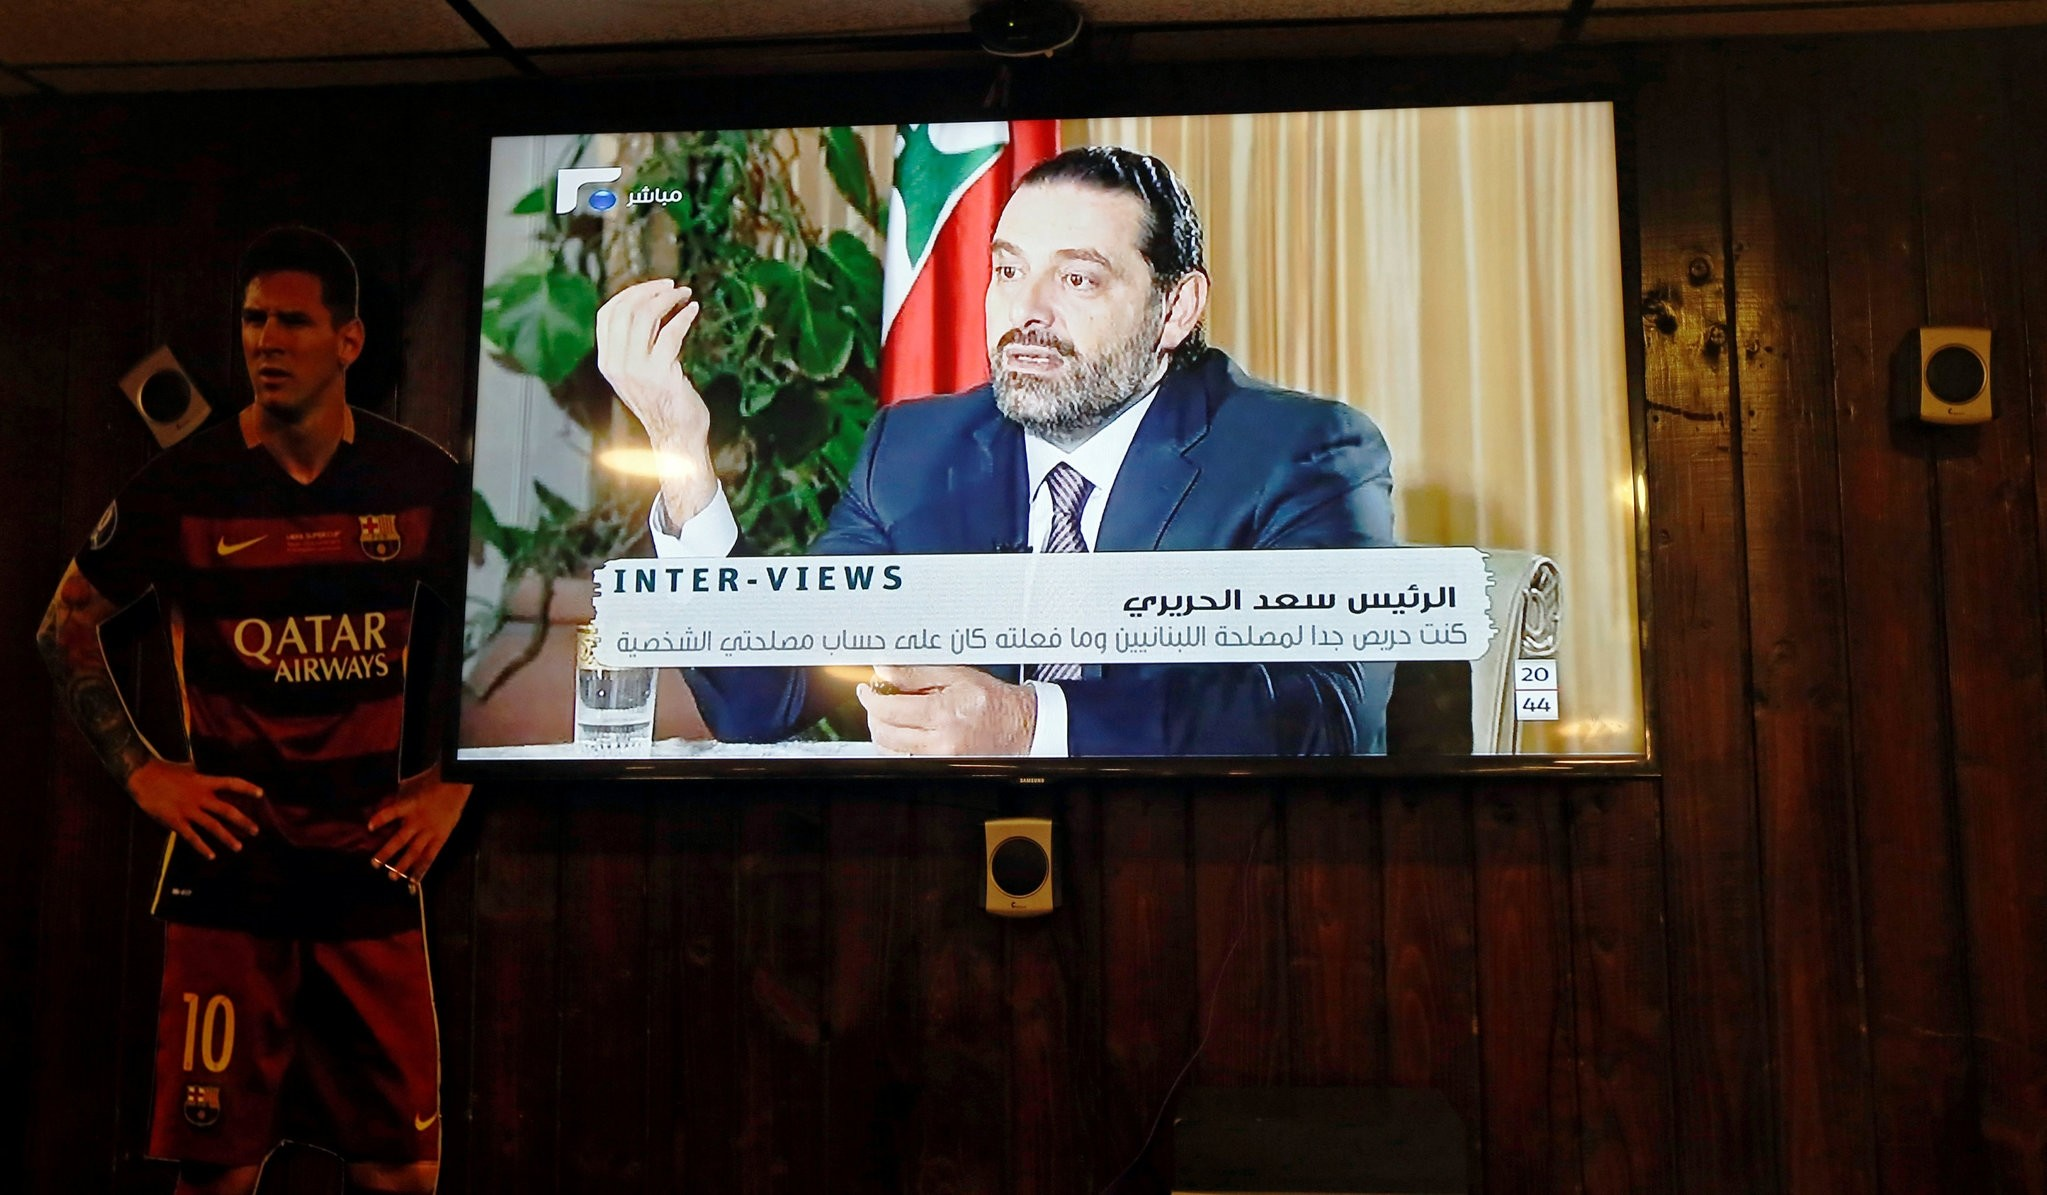 Lebanon's Prime Minister Saad al-Hariri, who has resigned, is seen during Future television interview, in a coffee shop in Beirut, Lebanon November 12, 2017. (REUTERS Photo)